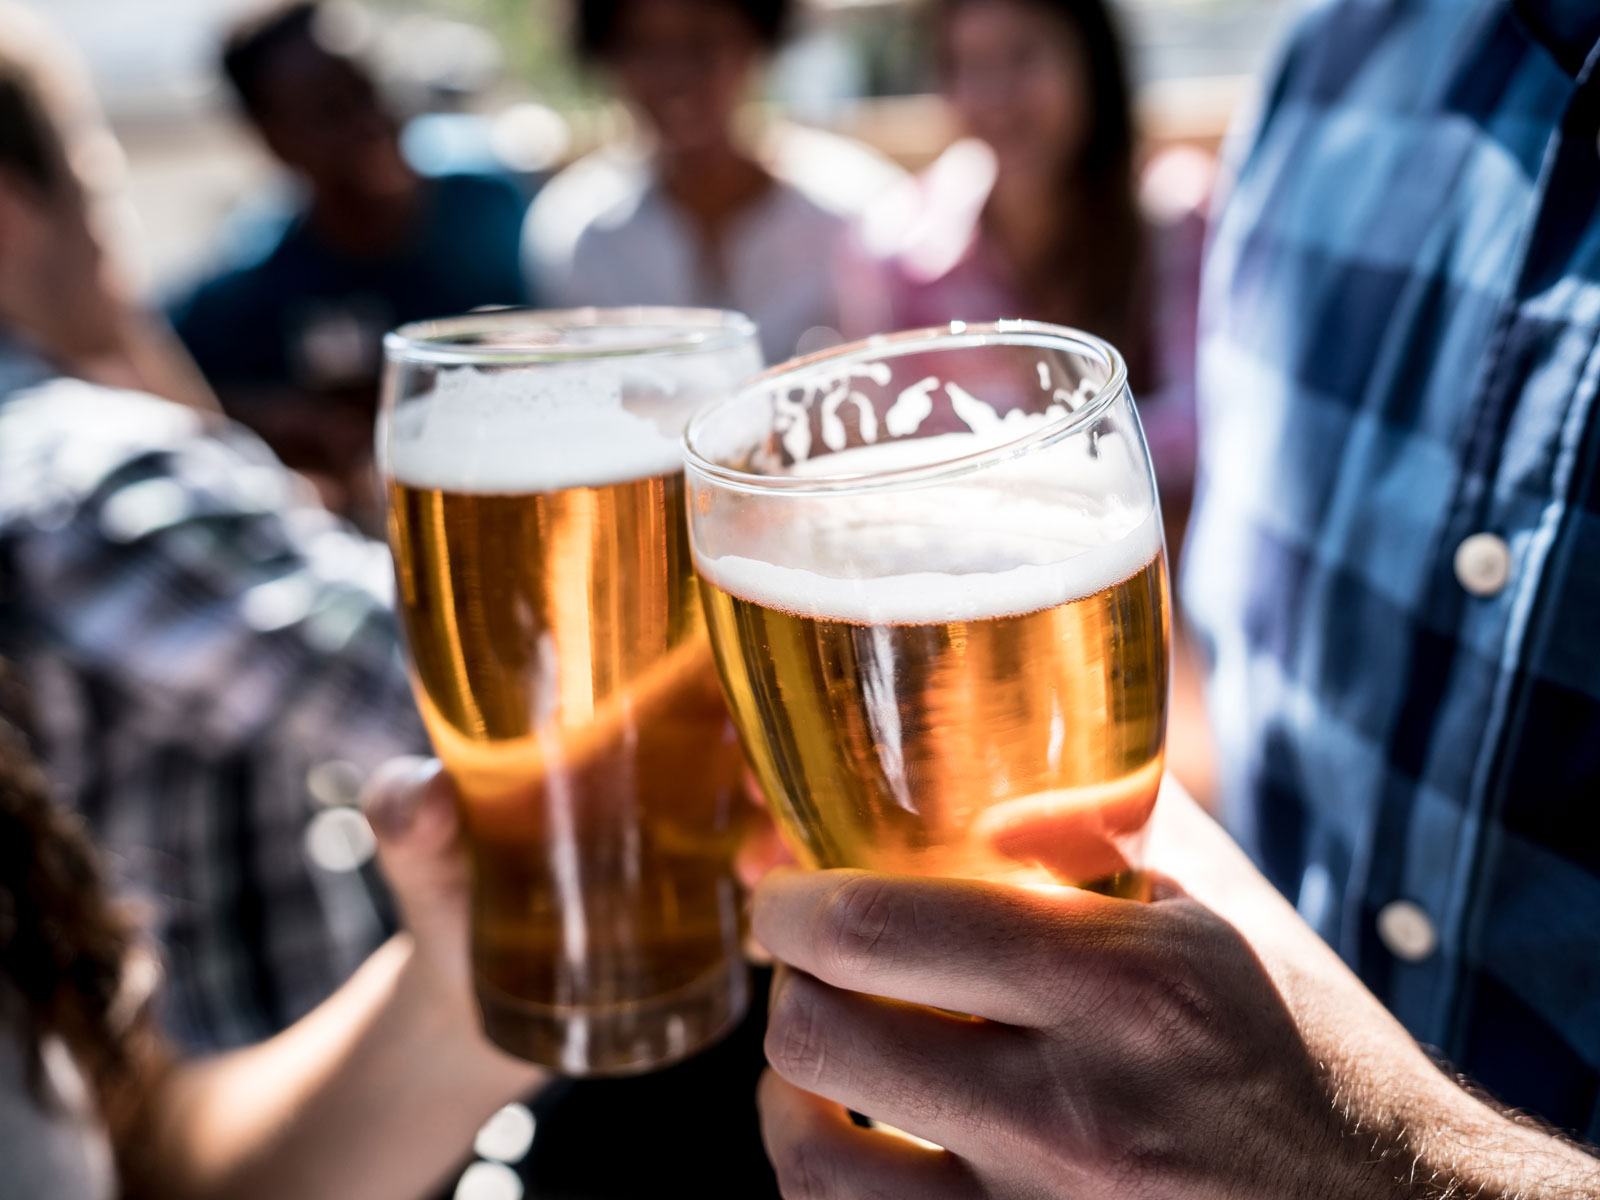 Researchers Developed a More Sustainable Way to Make Hoppy Beer—Here's Where to Try It